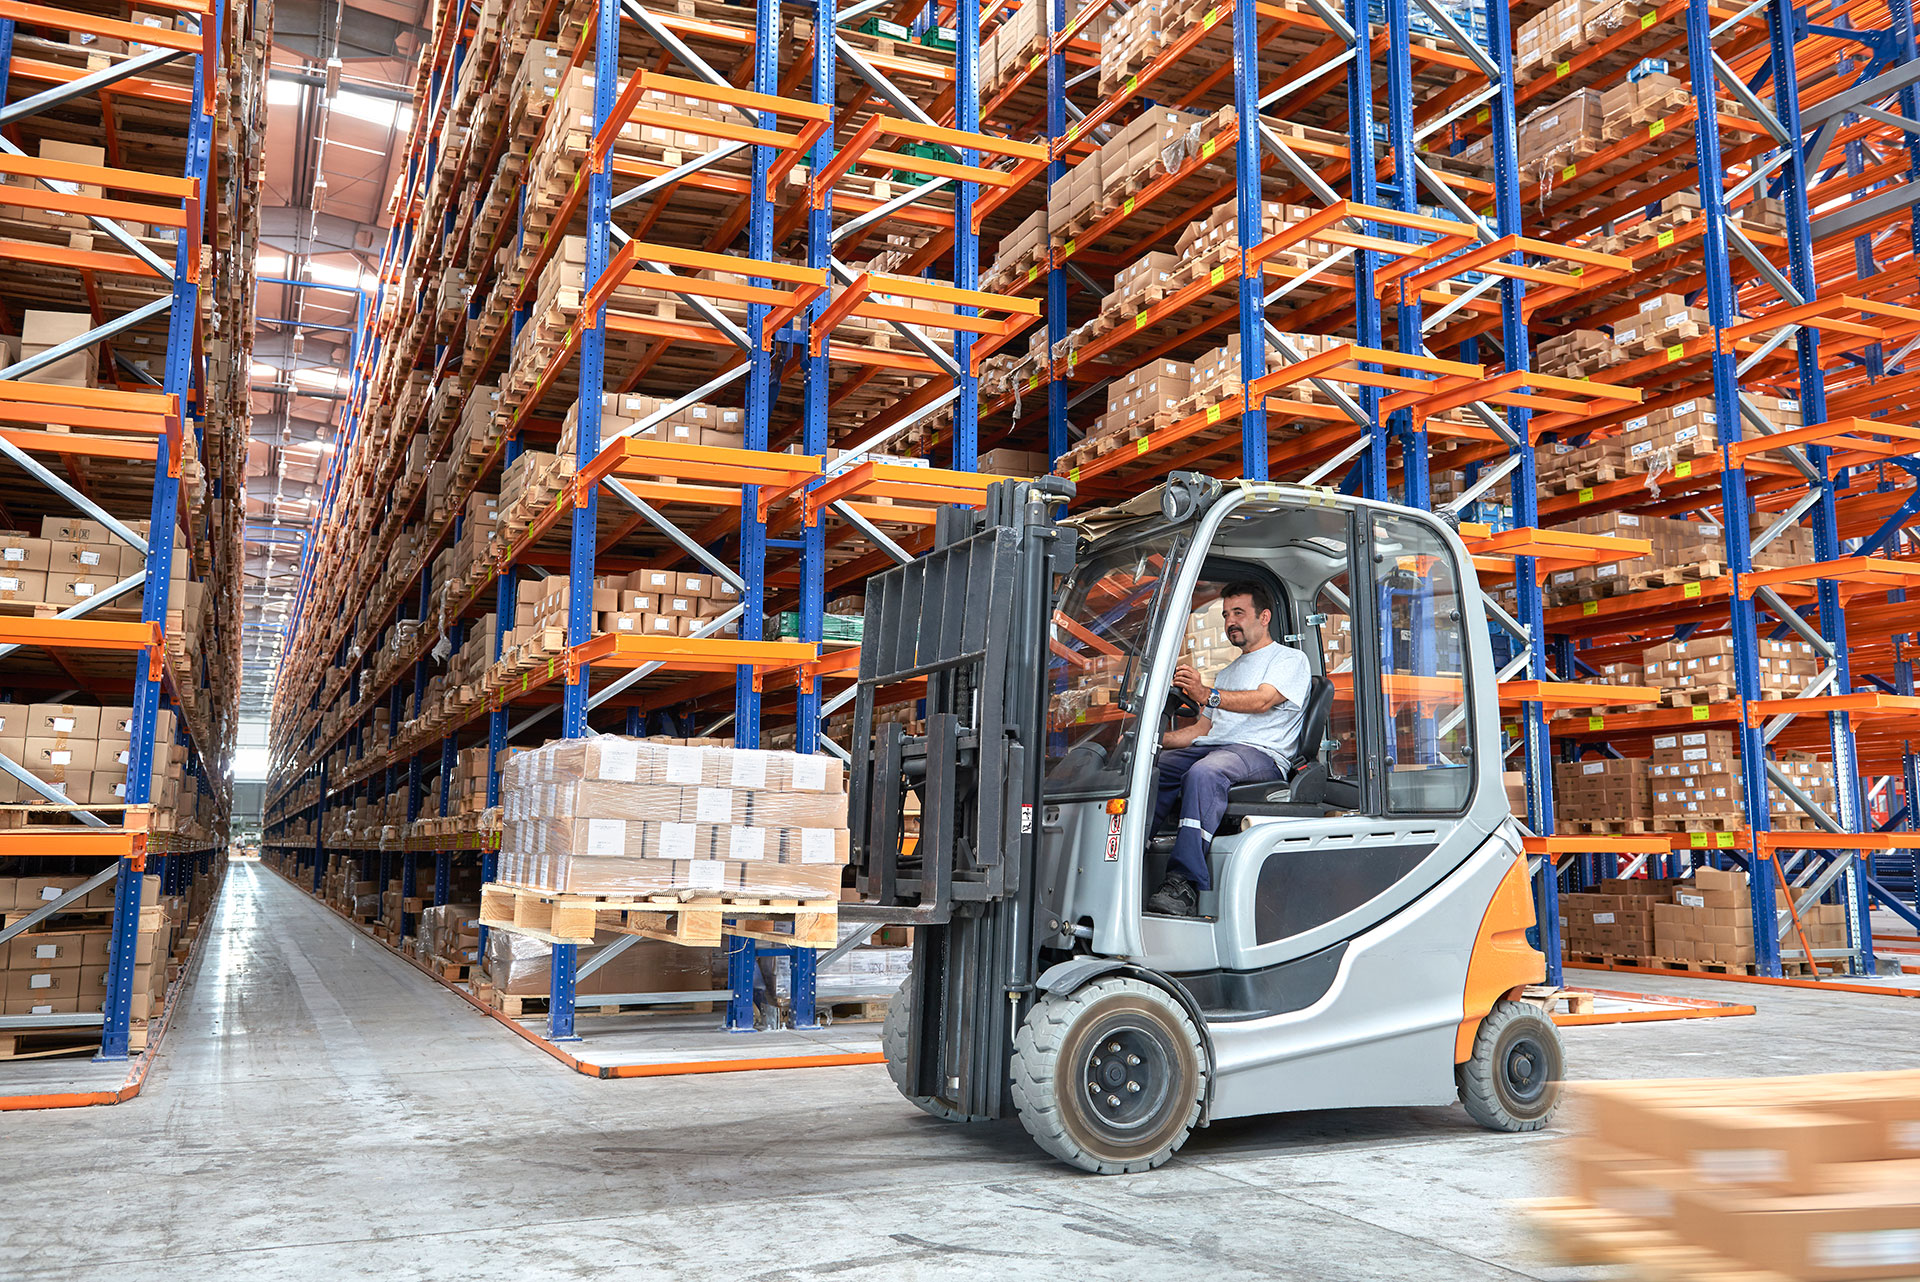 man driving a forklift in a distribution center